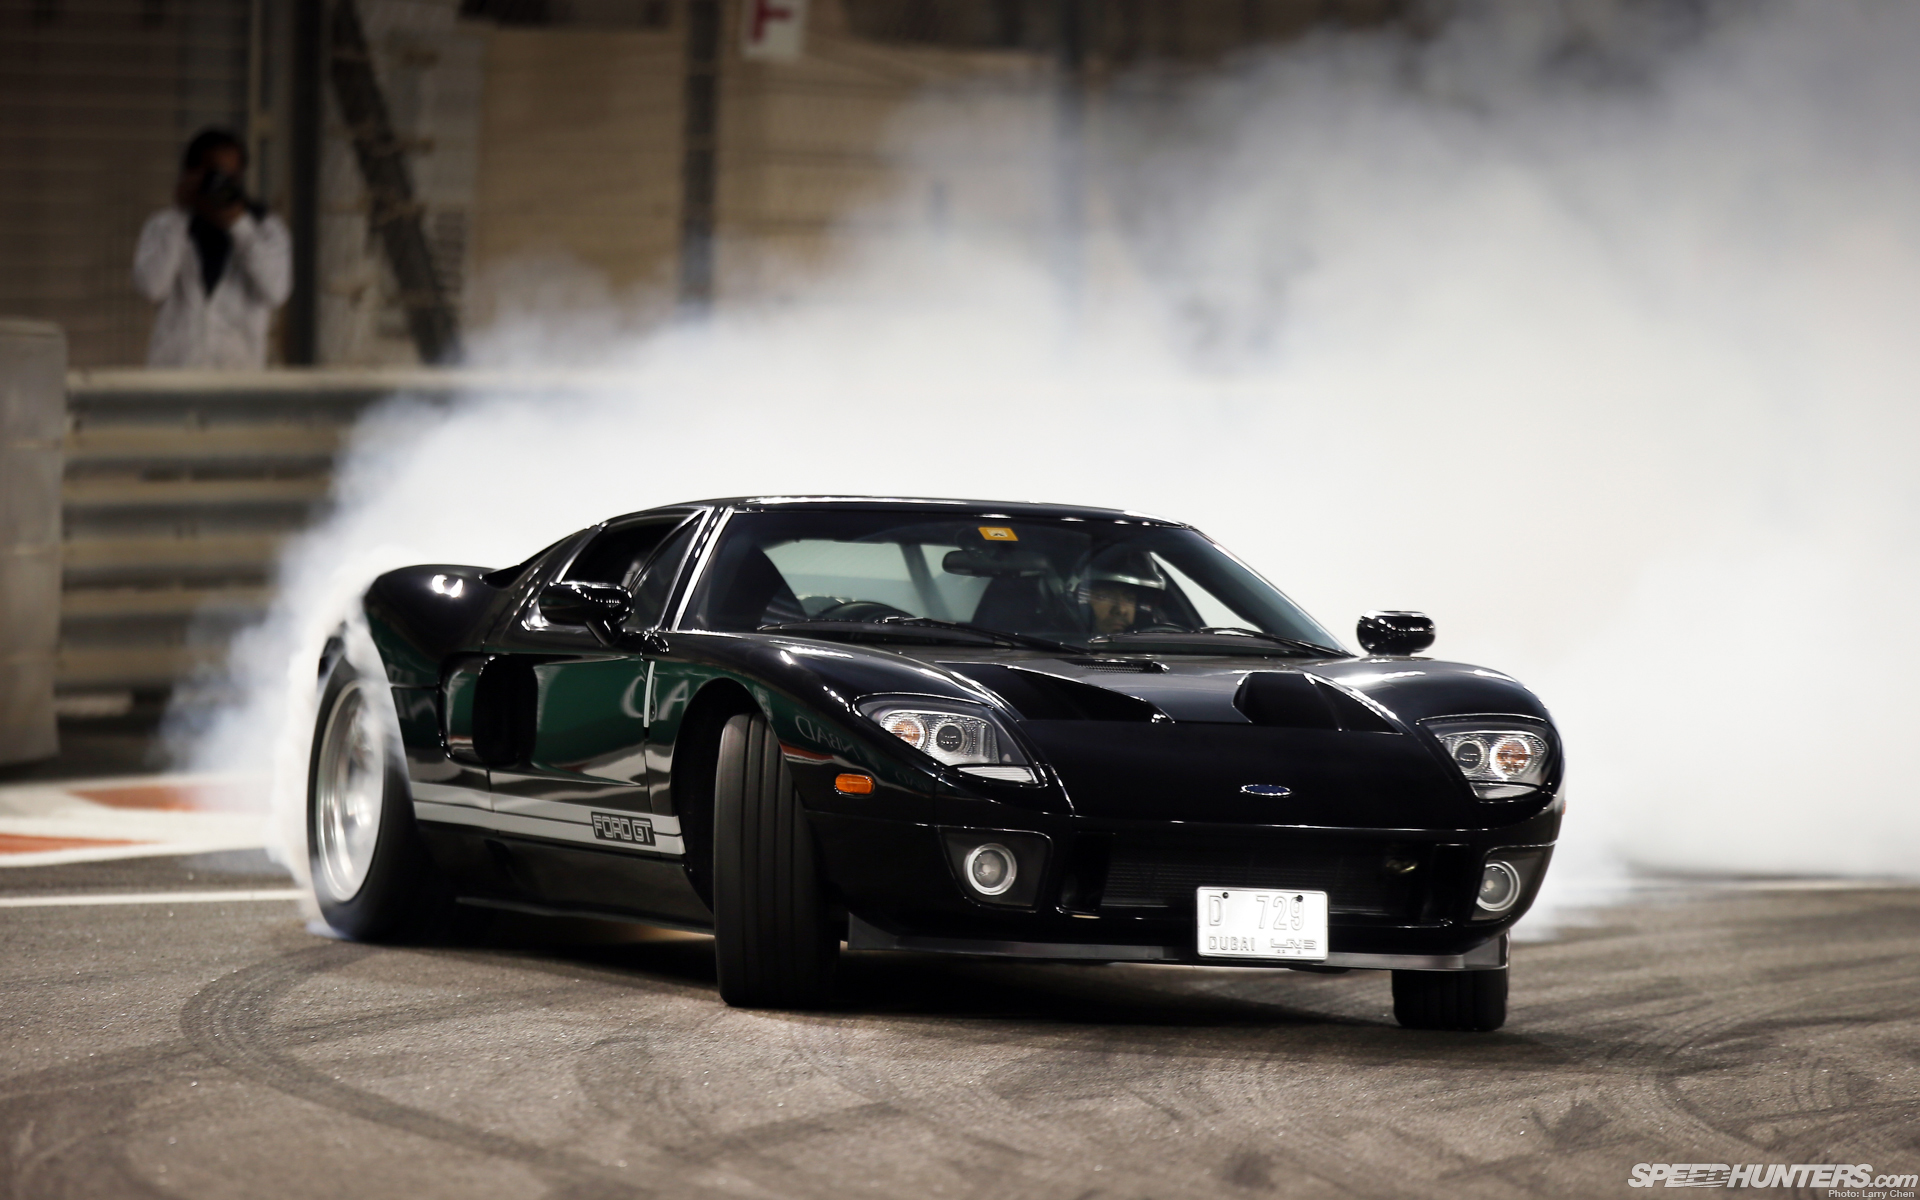 Ford Gt Vehicles Car Black Drift Wallpaper Ubackground Com